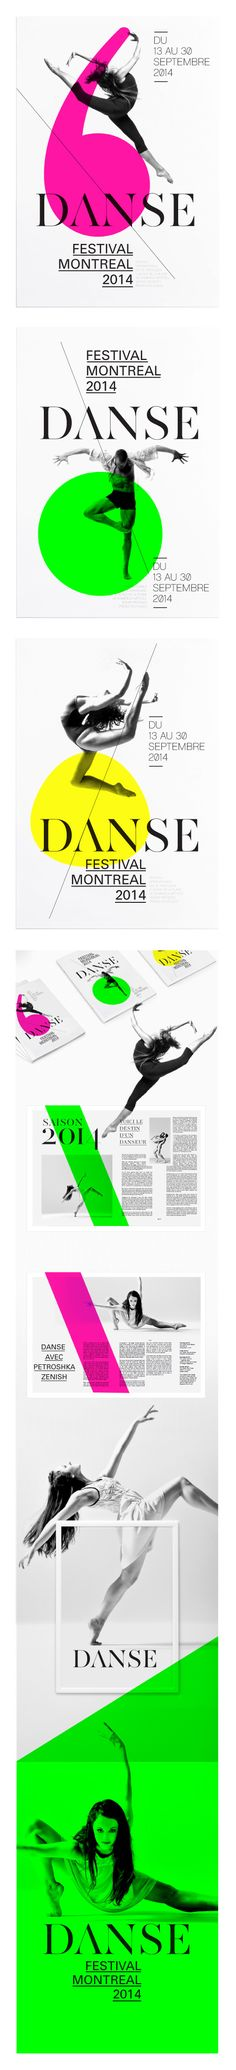 FESTIVAL DE DANSE DE MONTREAL on Behance in Poster